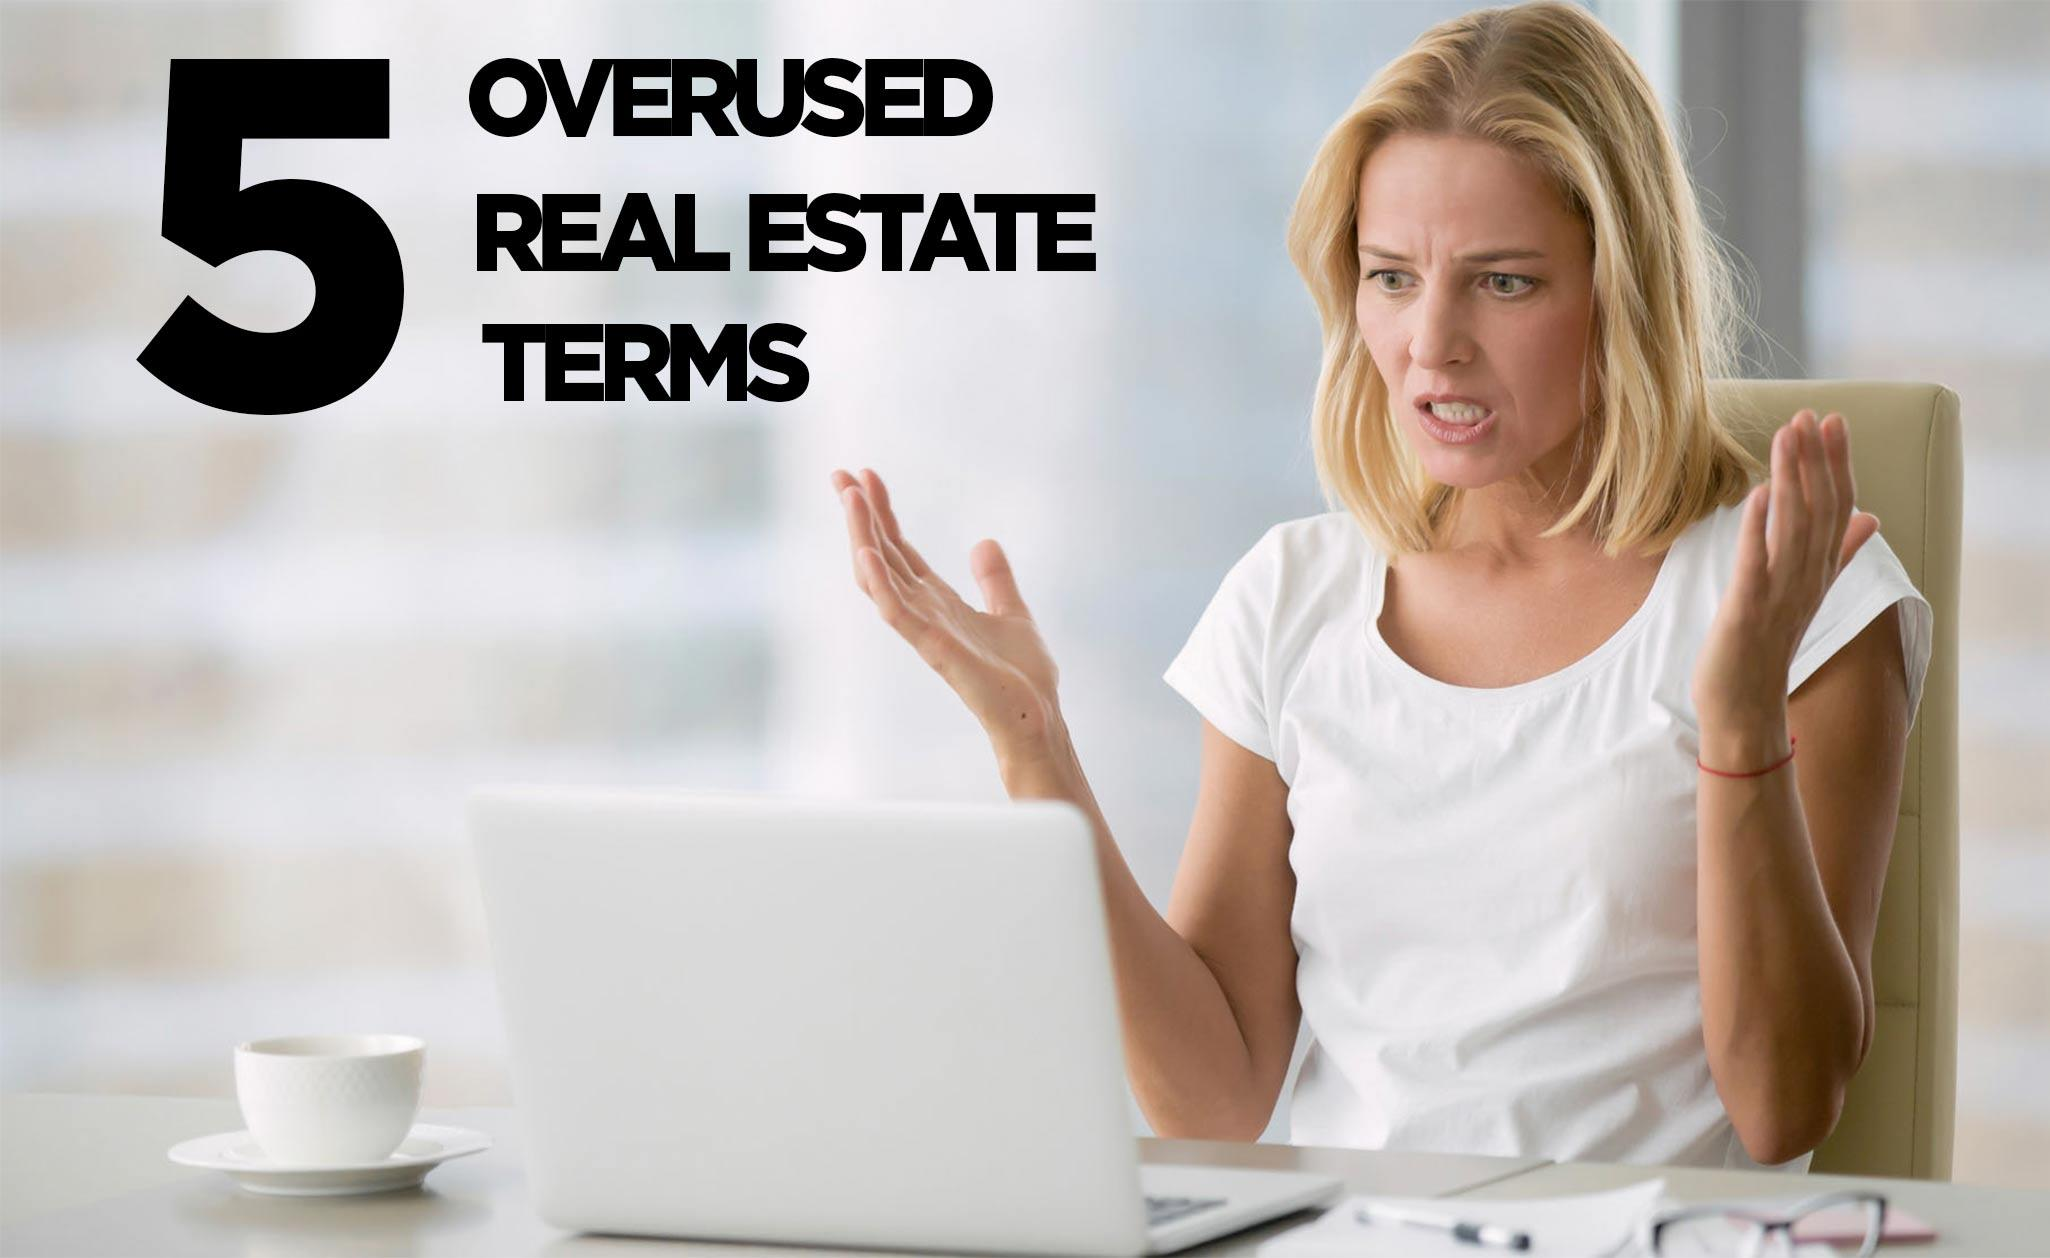 5 overused real estate terms